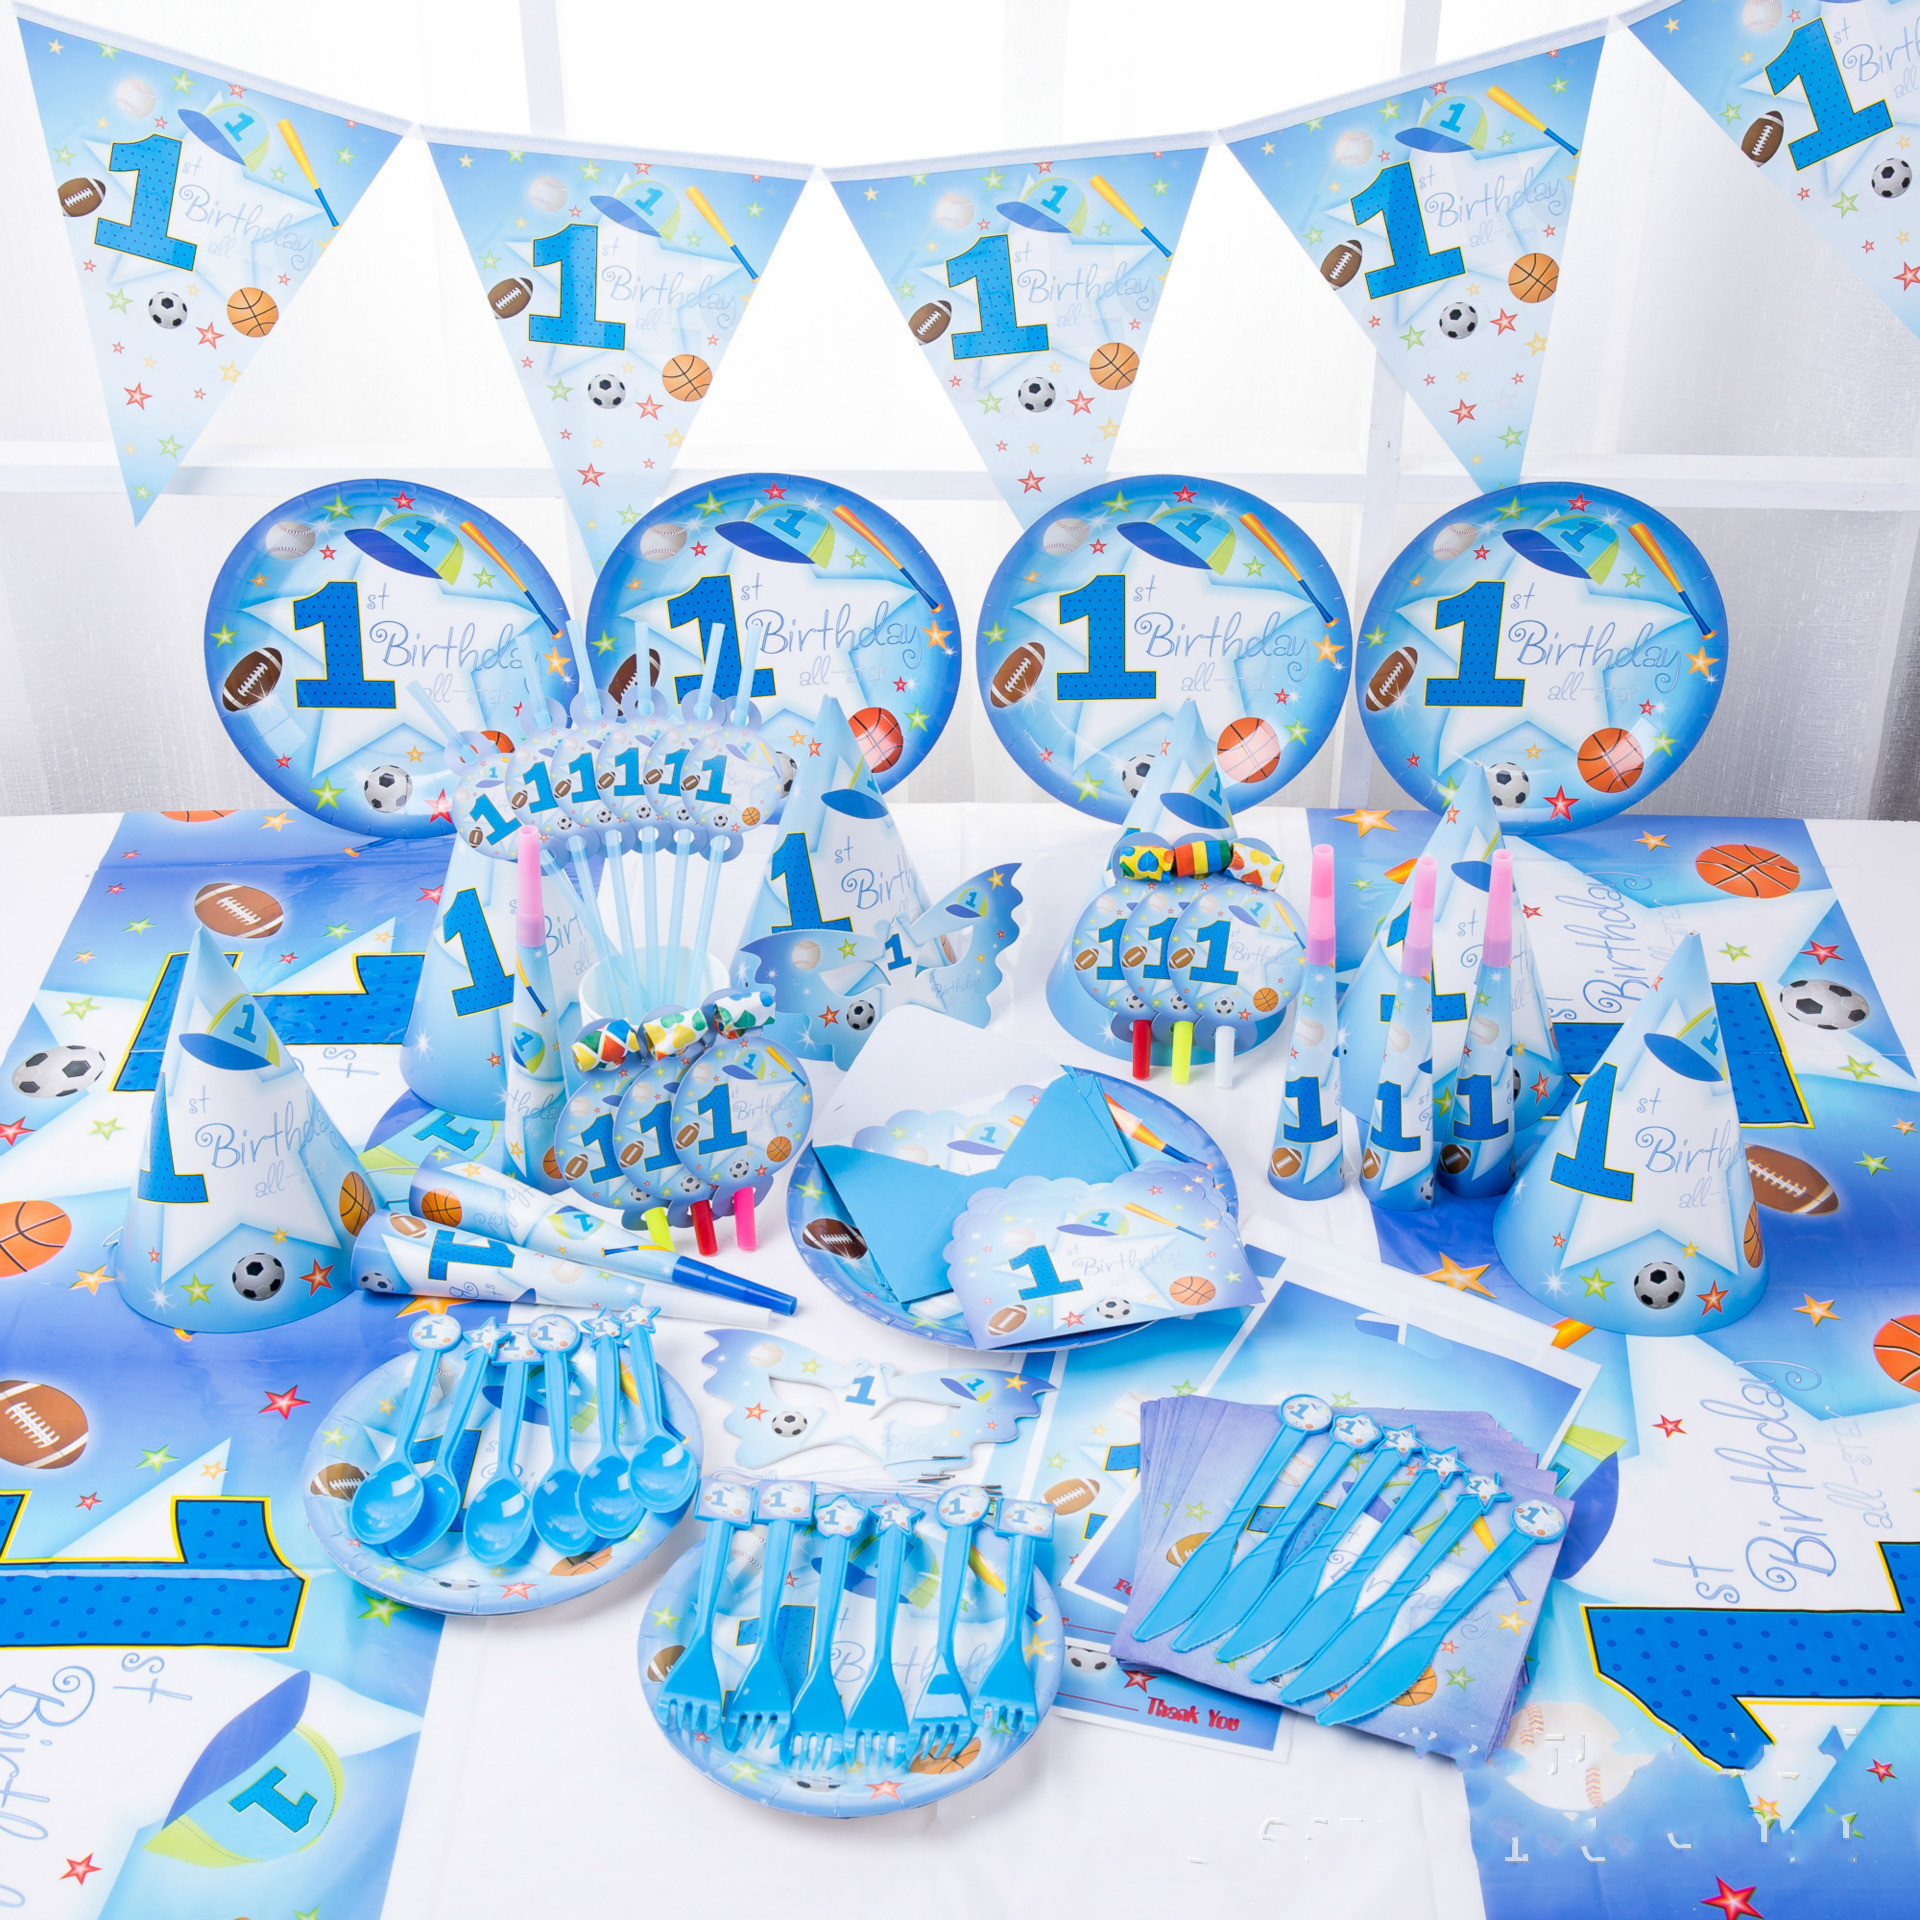 Baby Party Supplies Set 6 People Sports Boy Theme Birthday Party Supplies Set Baby Gift Child Kids Boys Party Supplies Set